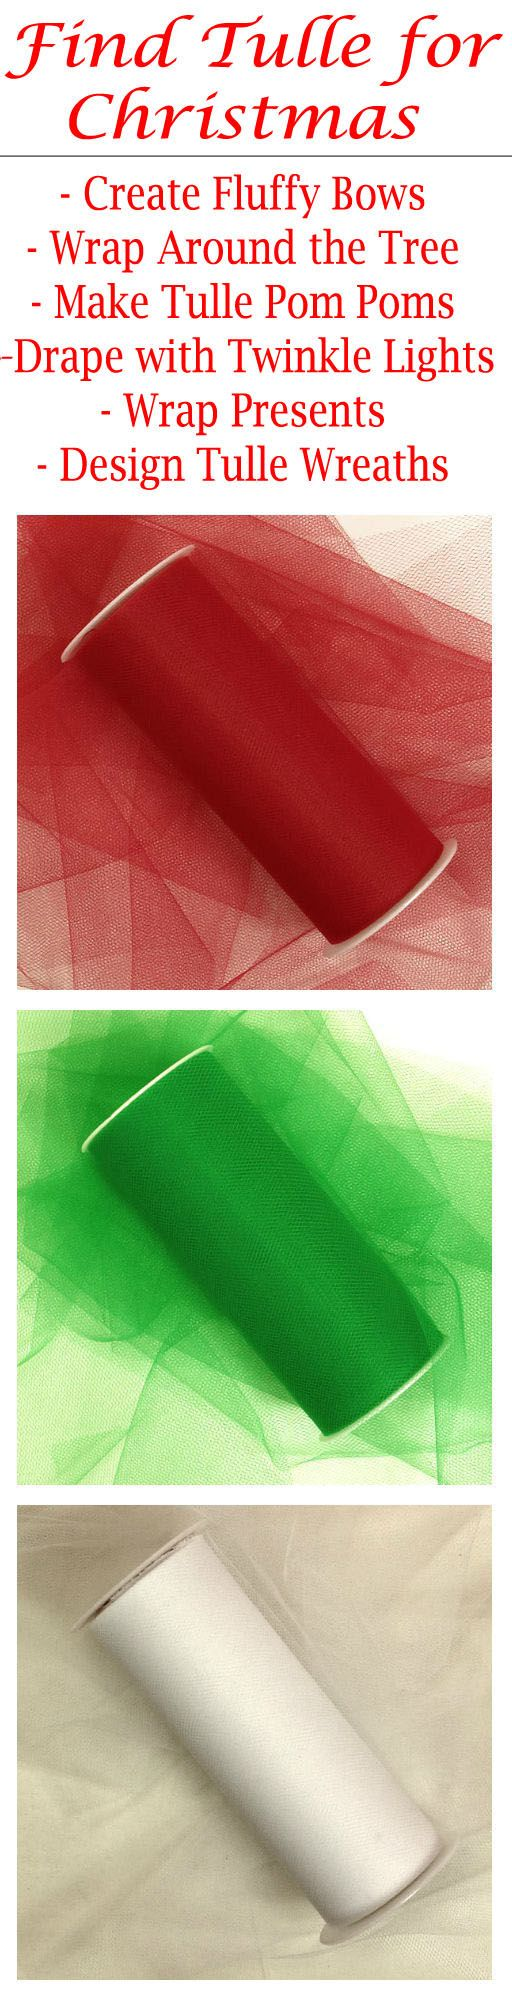 "Shop PaperMart.com for tulle rolls in festive colors for Christmas and all holidays. There are so MANY uses for tulle at the holidays. Use this versatile fabric to wrap gifts or make fluffy bows, use to wrap around the Christmas tree as a colorful garland, make tulle pom poms to hang up for a winder wonderland, make a beautiful backdrop with twinkle lights and tulle, create tulle wreaths for Christmas, and so much more! The tulle rolls are available in 3"", 6"", 12"", and 18"" wide spools…"